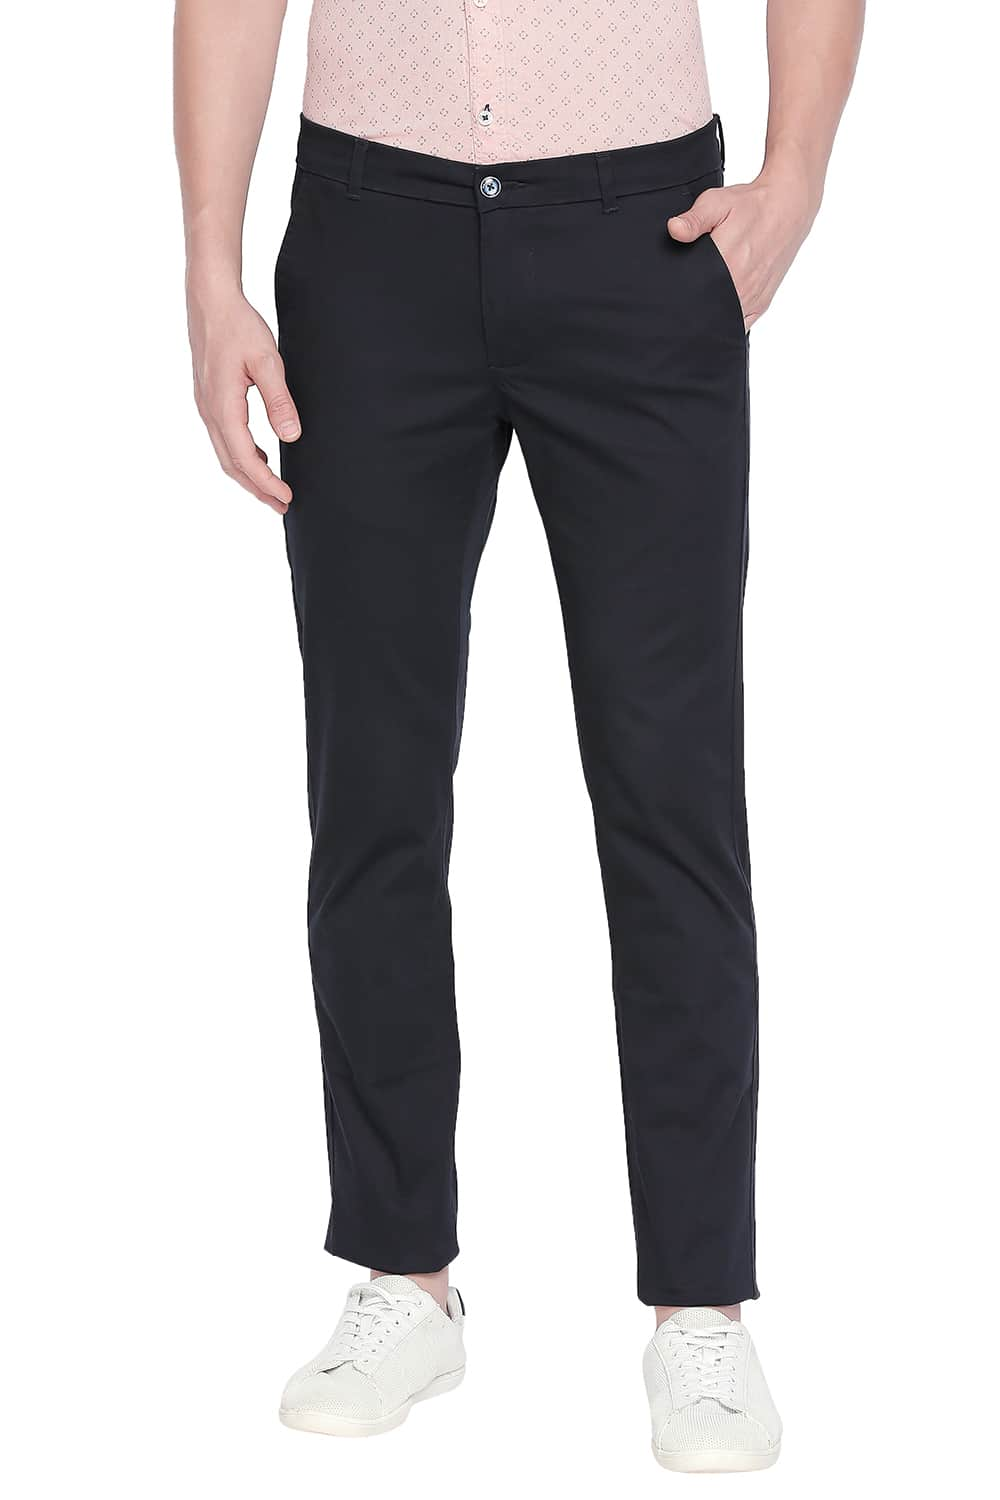 Basics | Basics Tapered Fit Total Eclipse Stretch Trouser